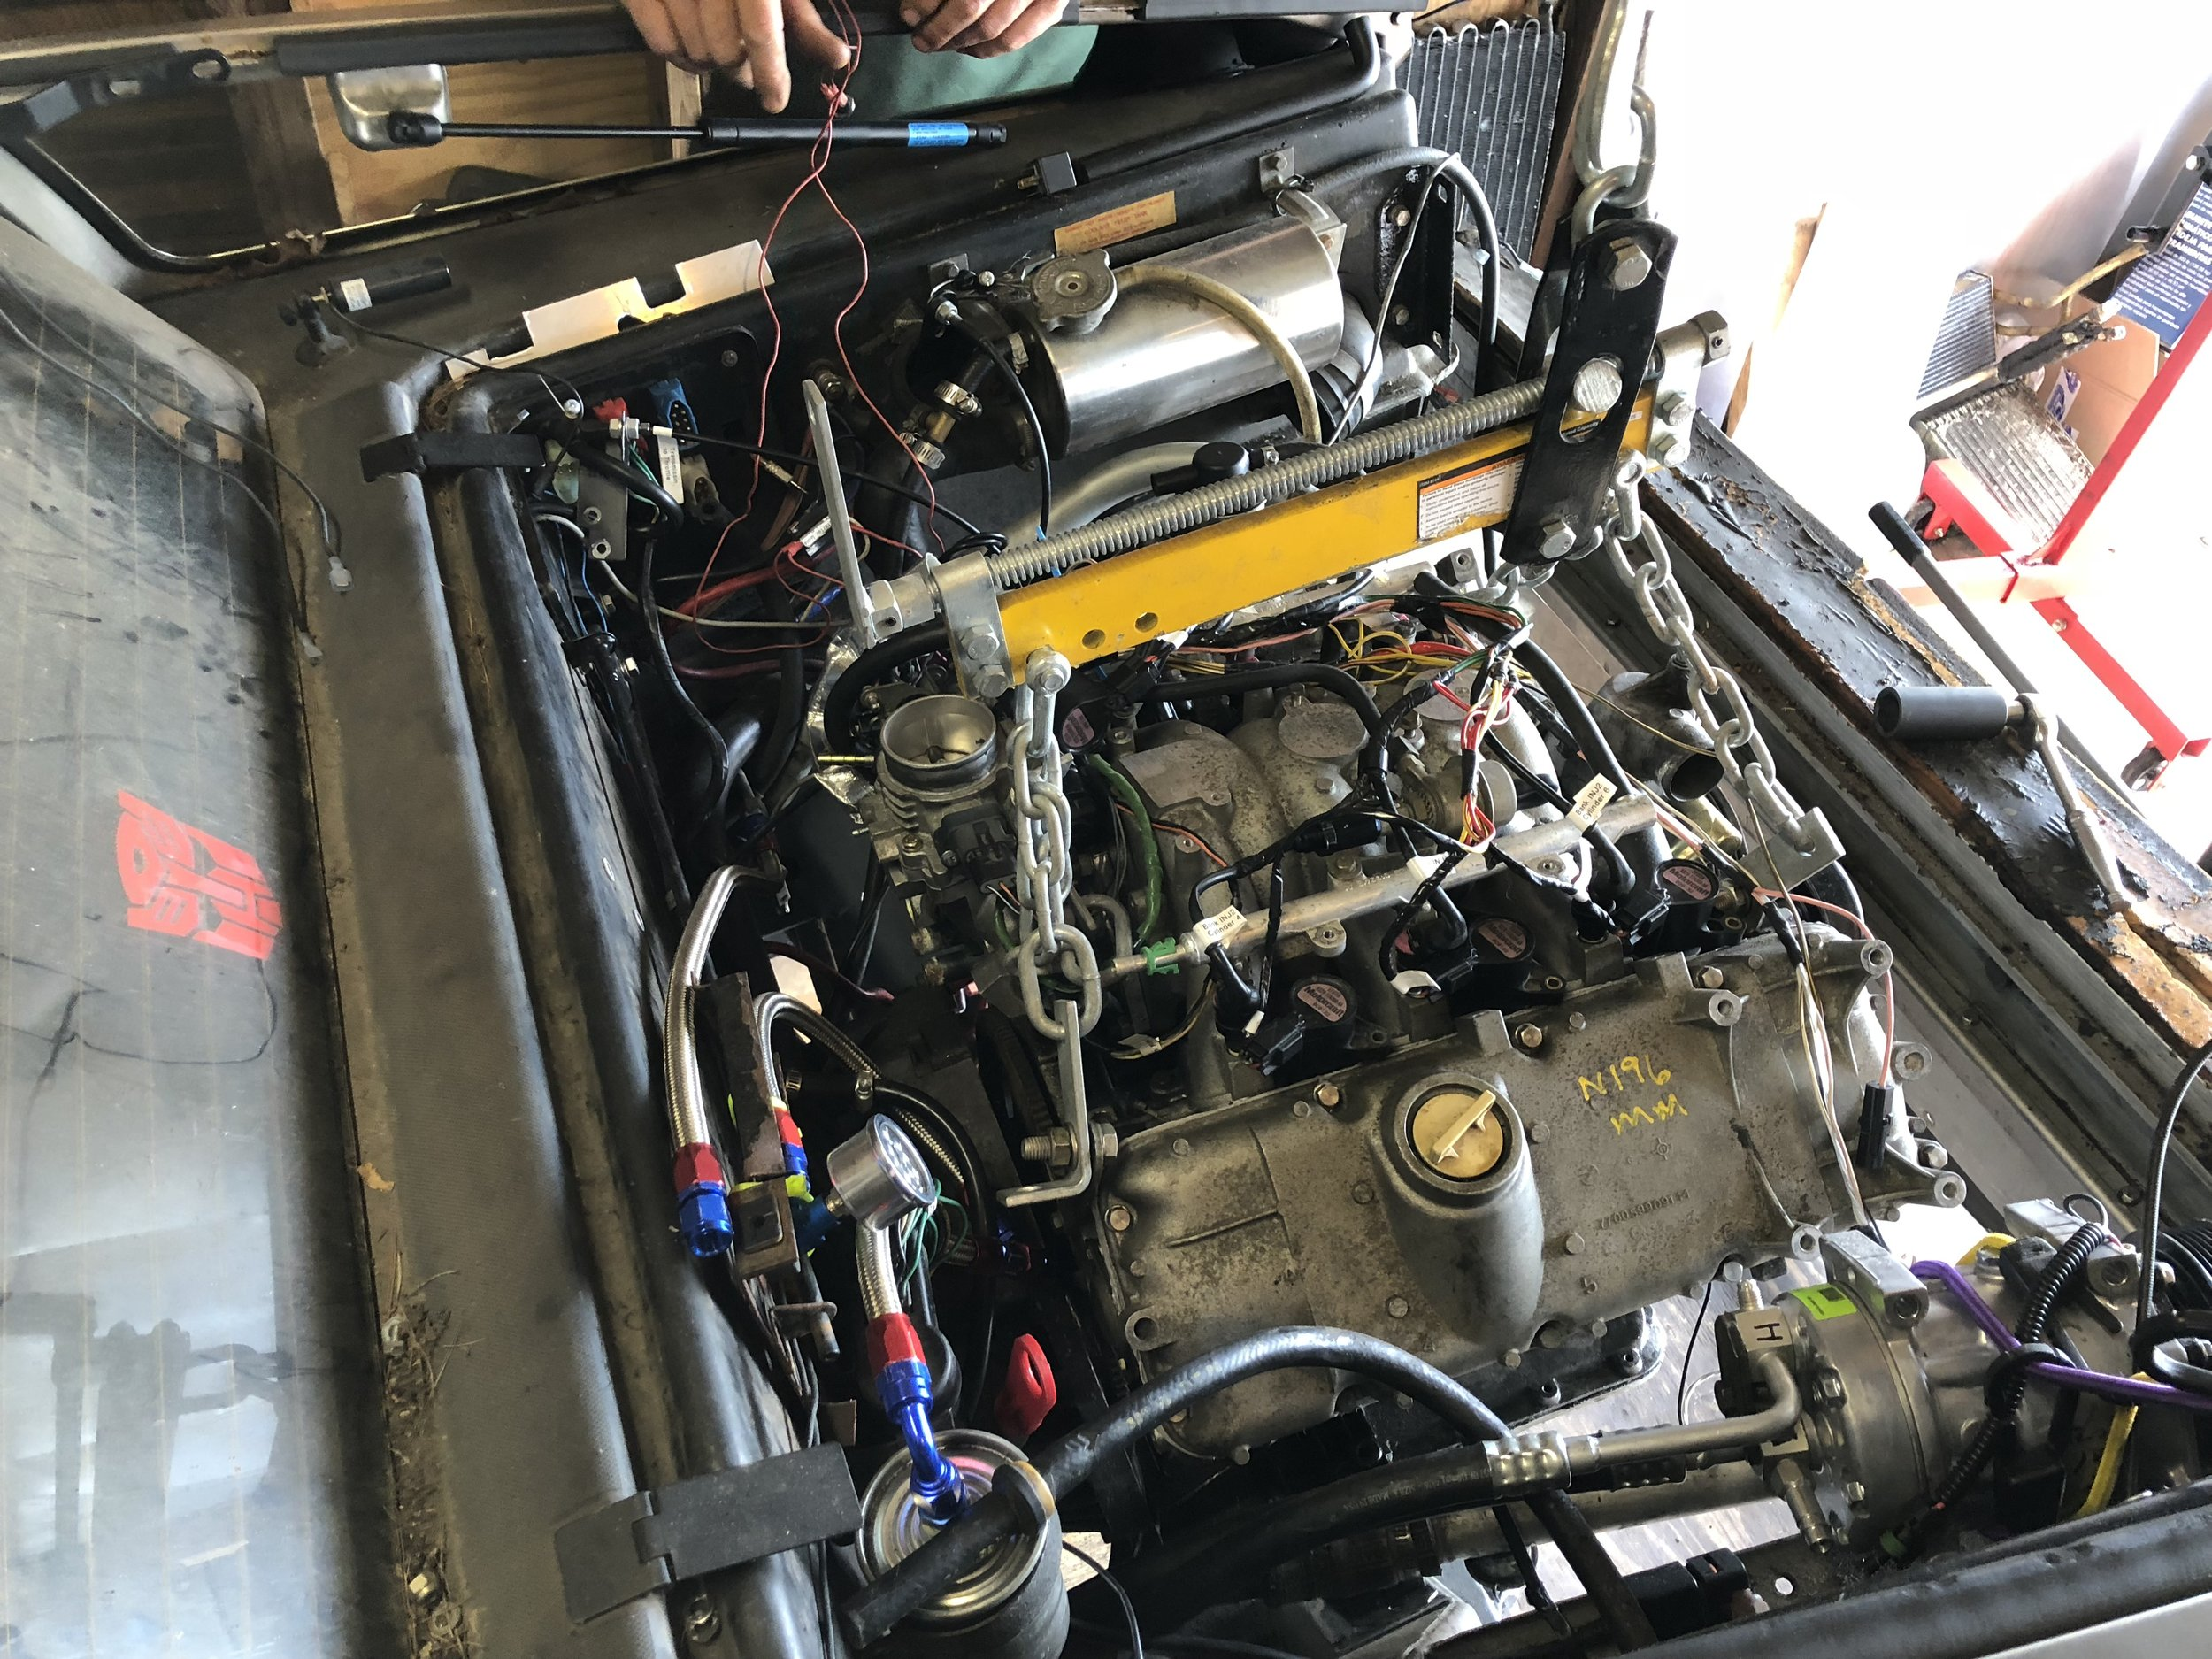 The engine lowered back into the engine bay. The flex plate can be seen as the engine isn't yet aligned to the transmission.